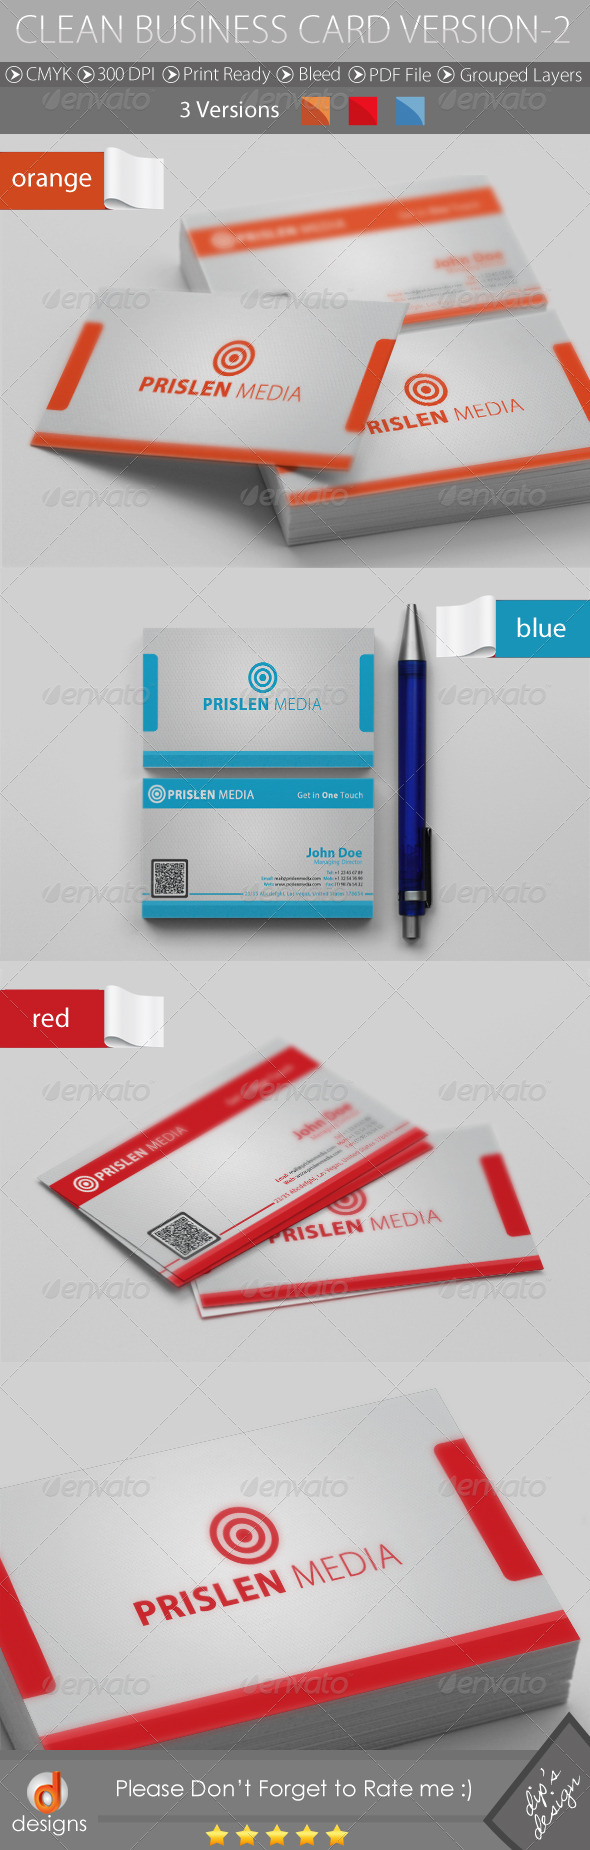 CLEAN BUSINESS CARD VERSION-2